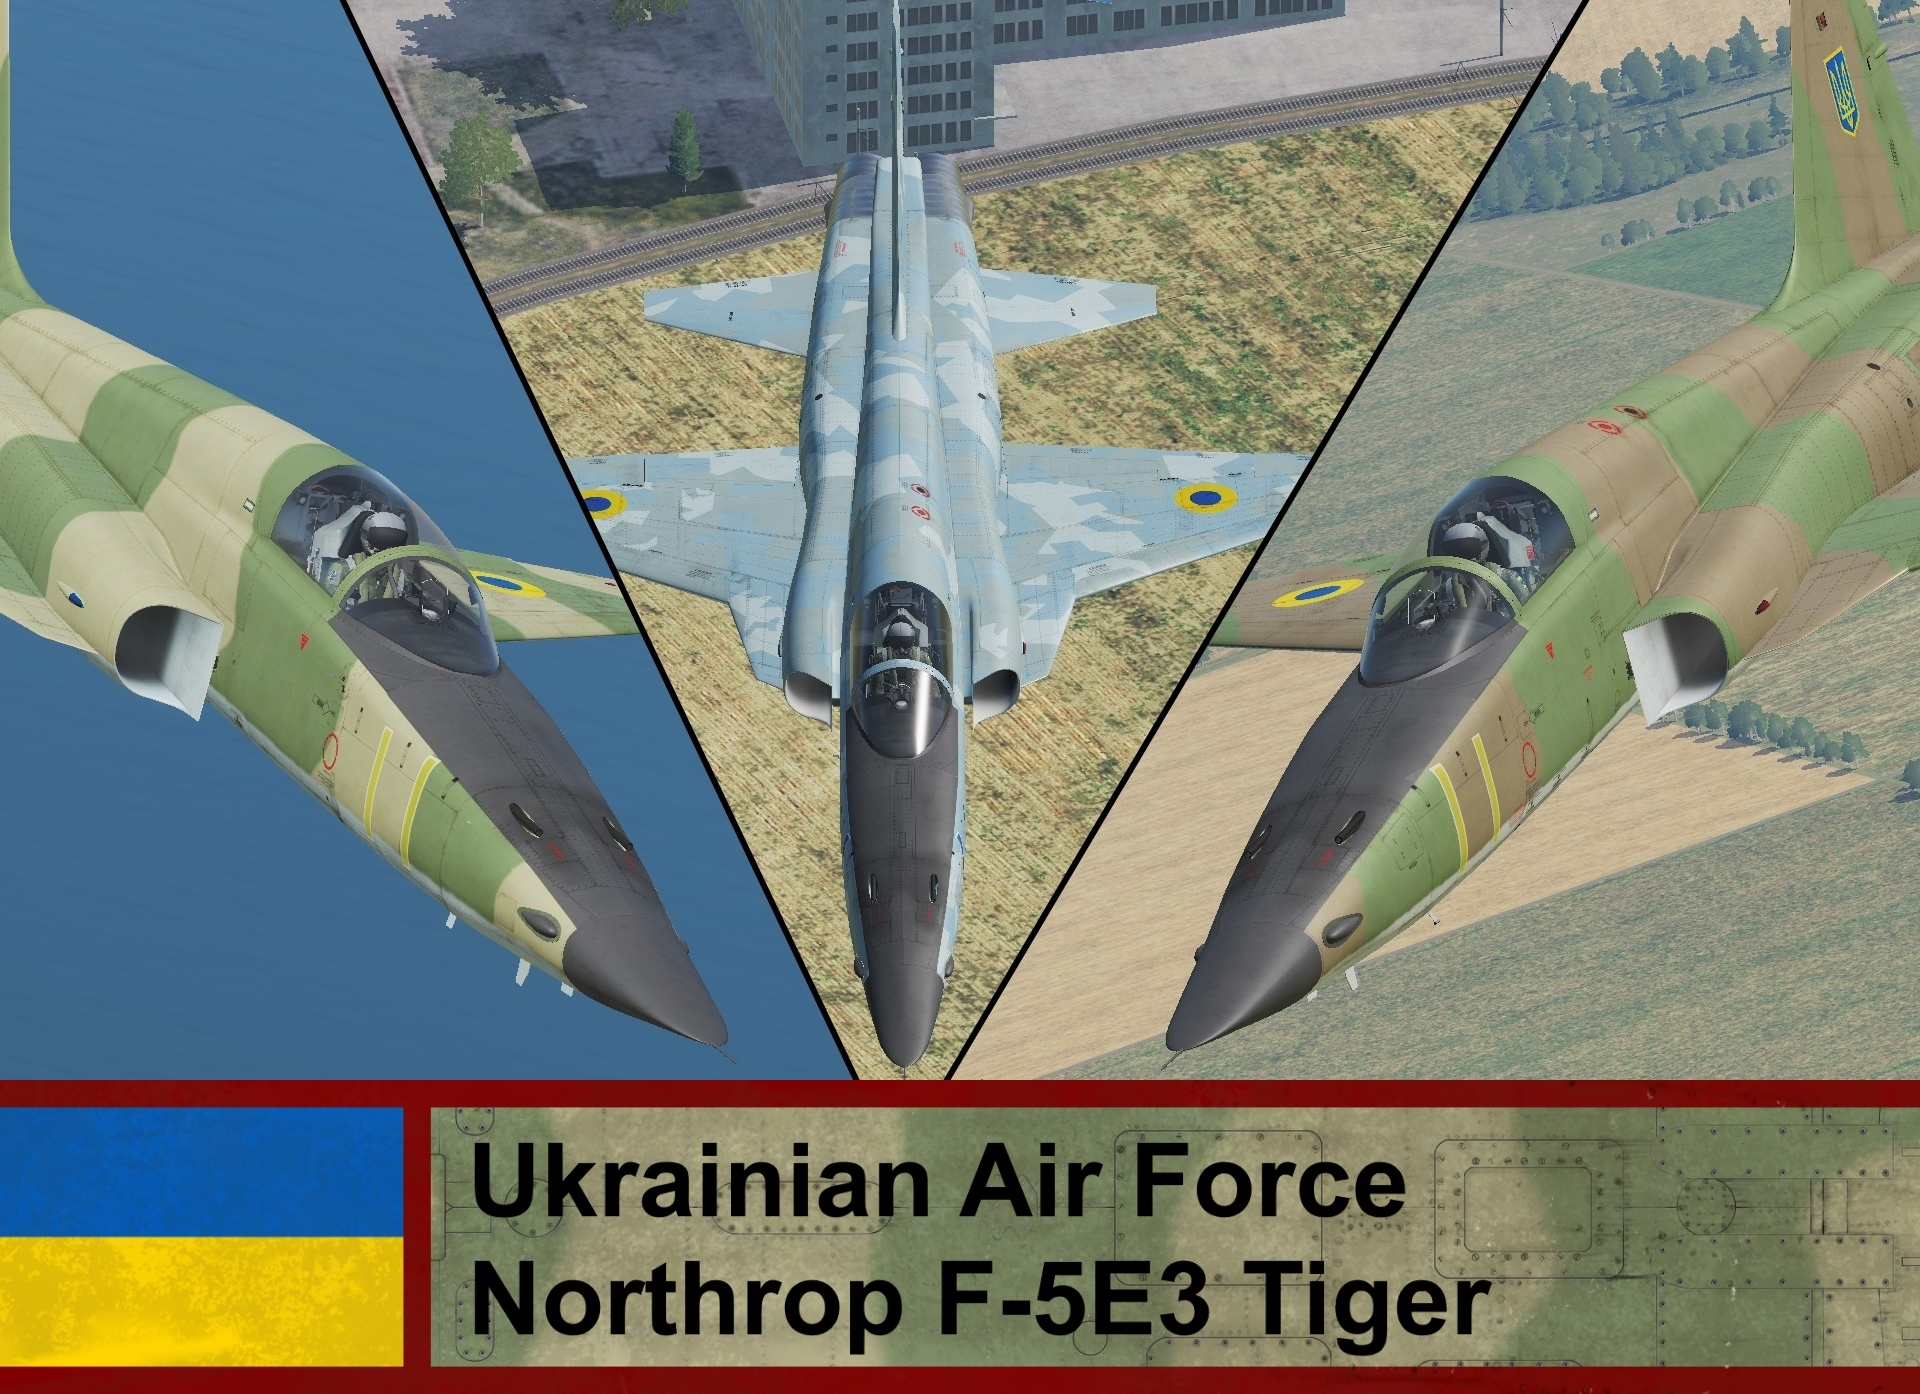 Ukrainian Air Force F-5E3 Tiger (Fictional)